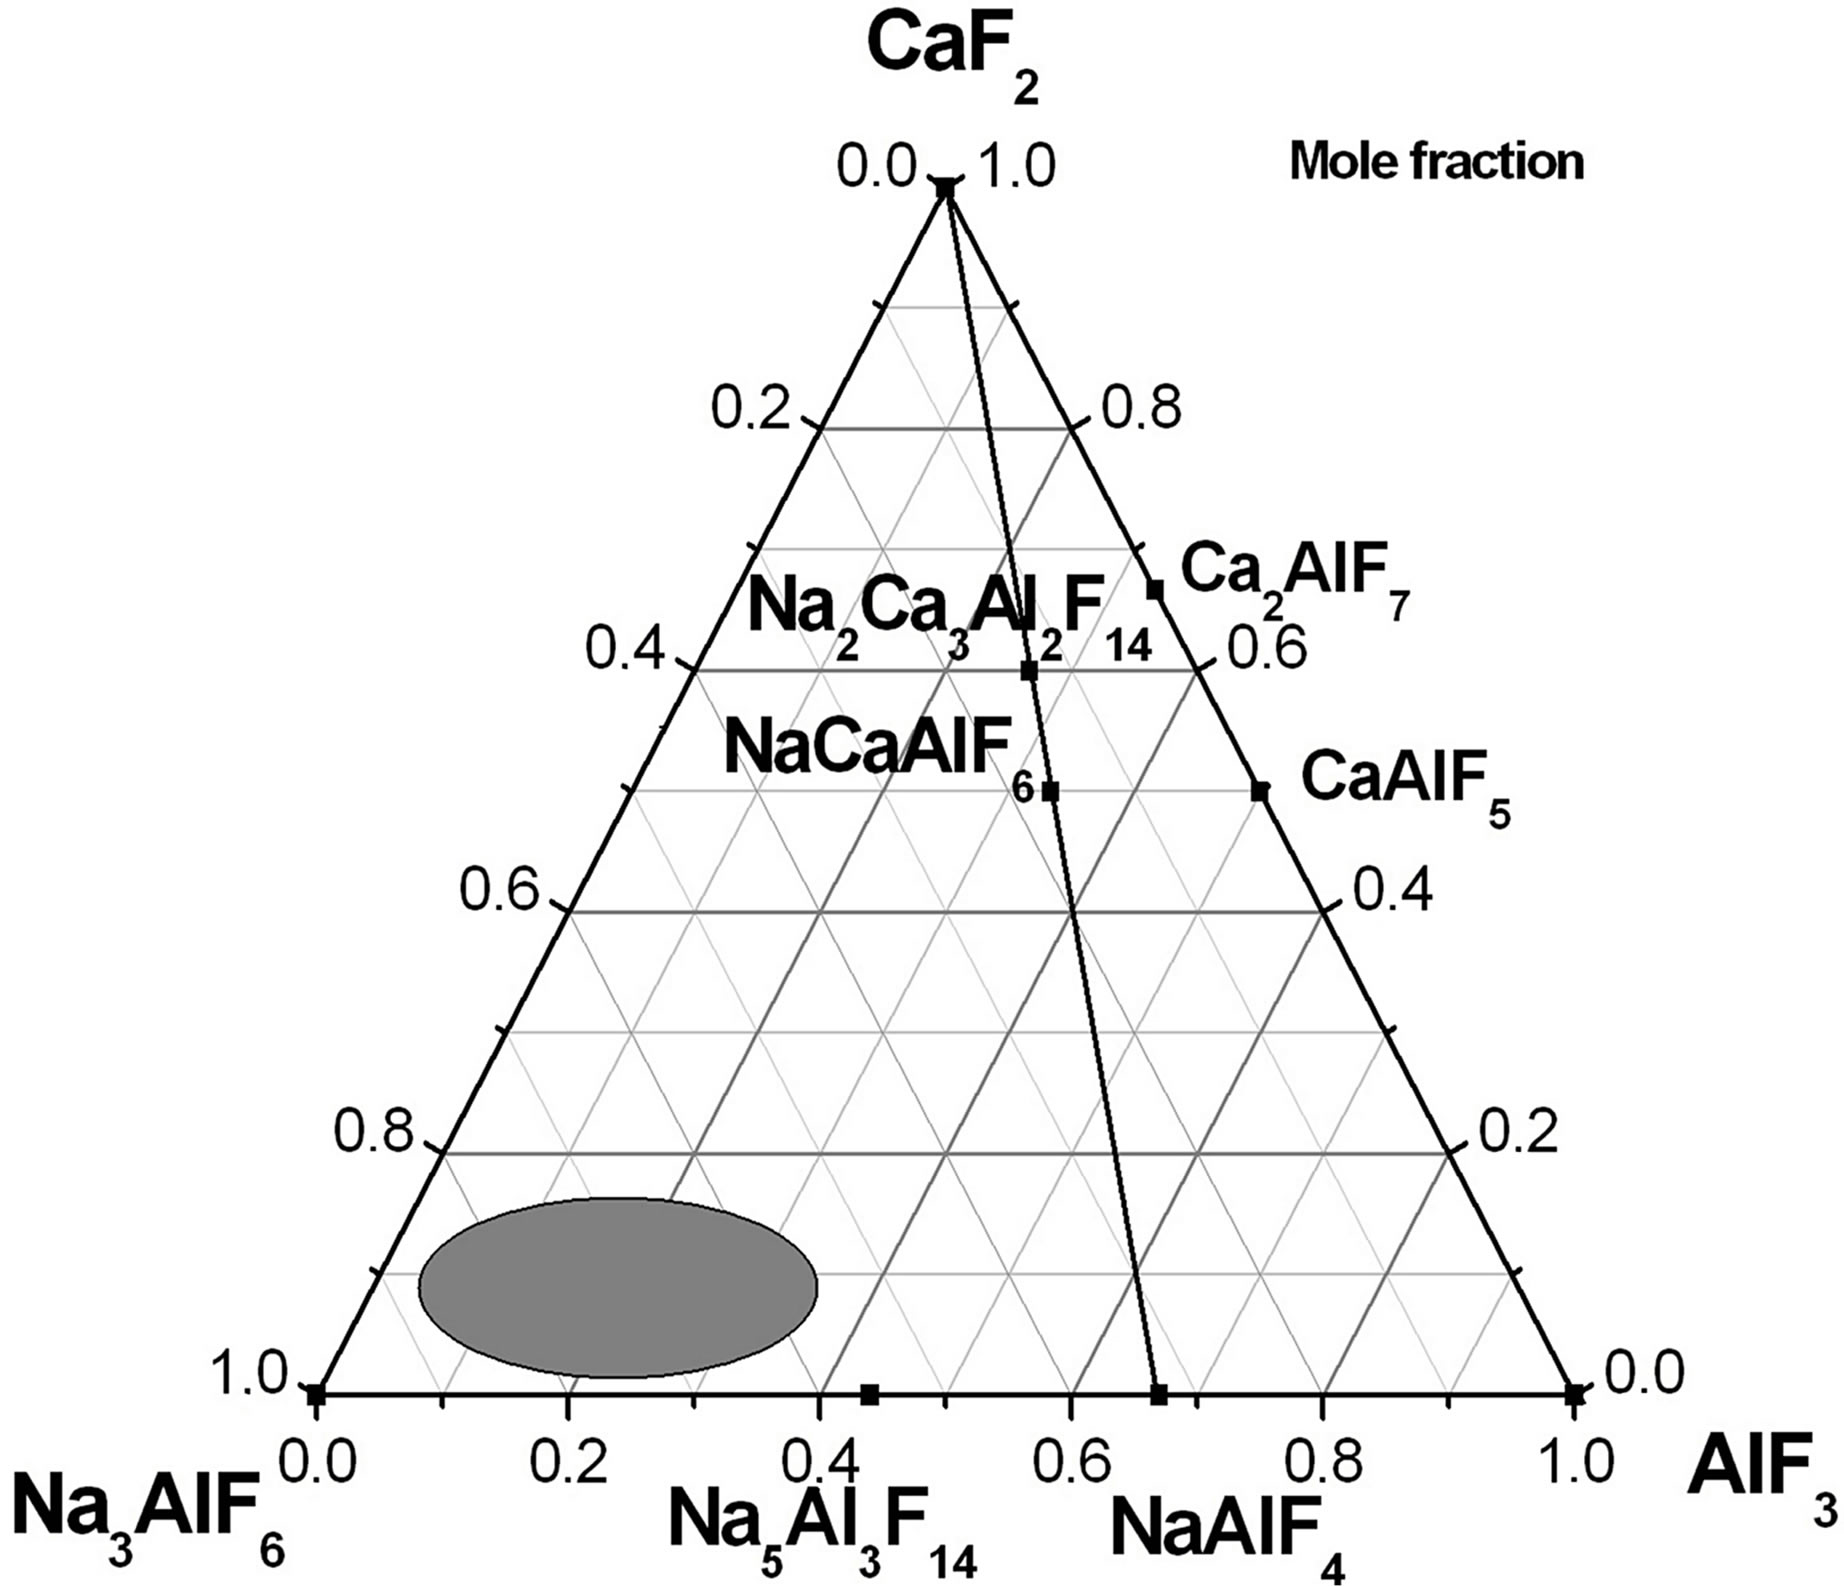 Thermal Transformations In The System Naf Caf 2 Alf 3 And